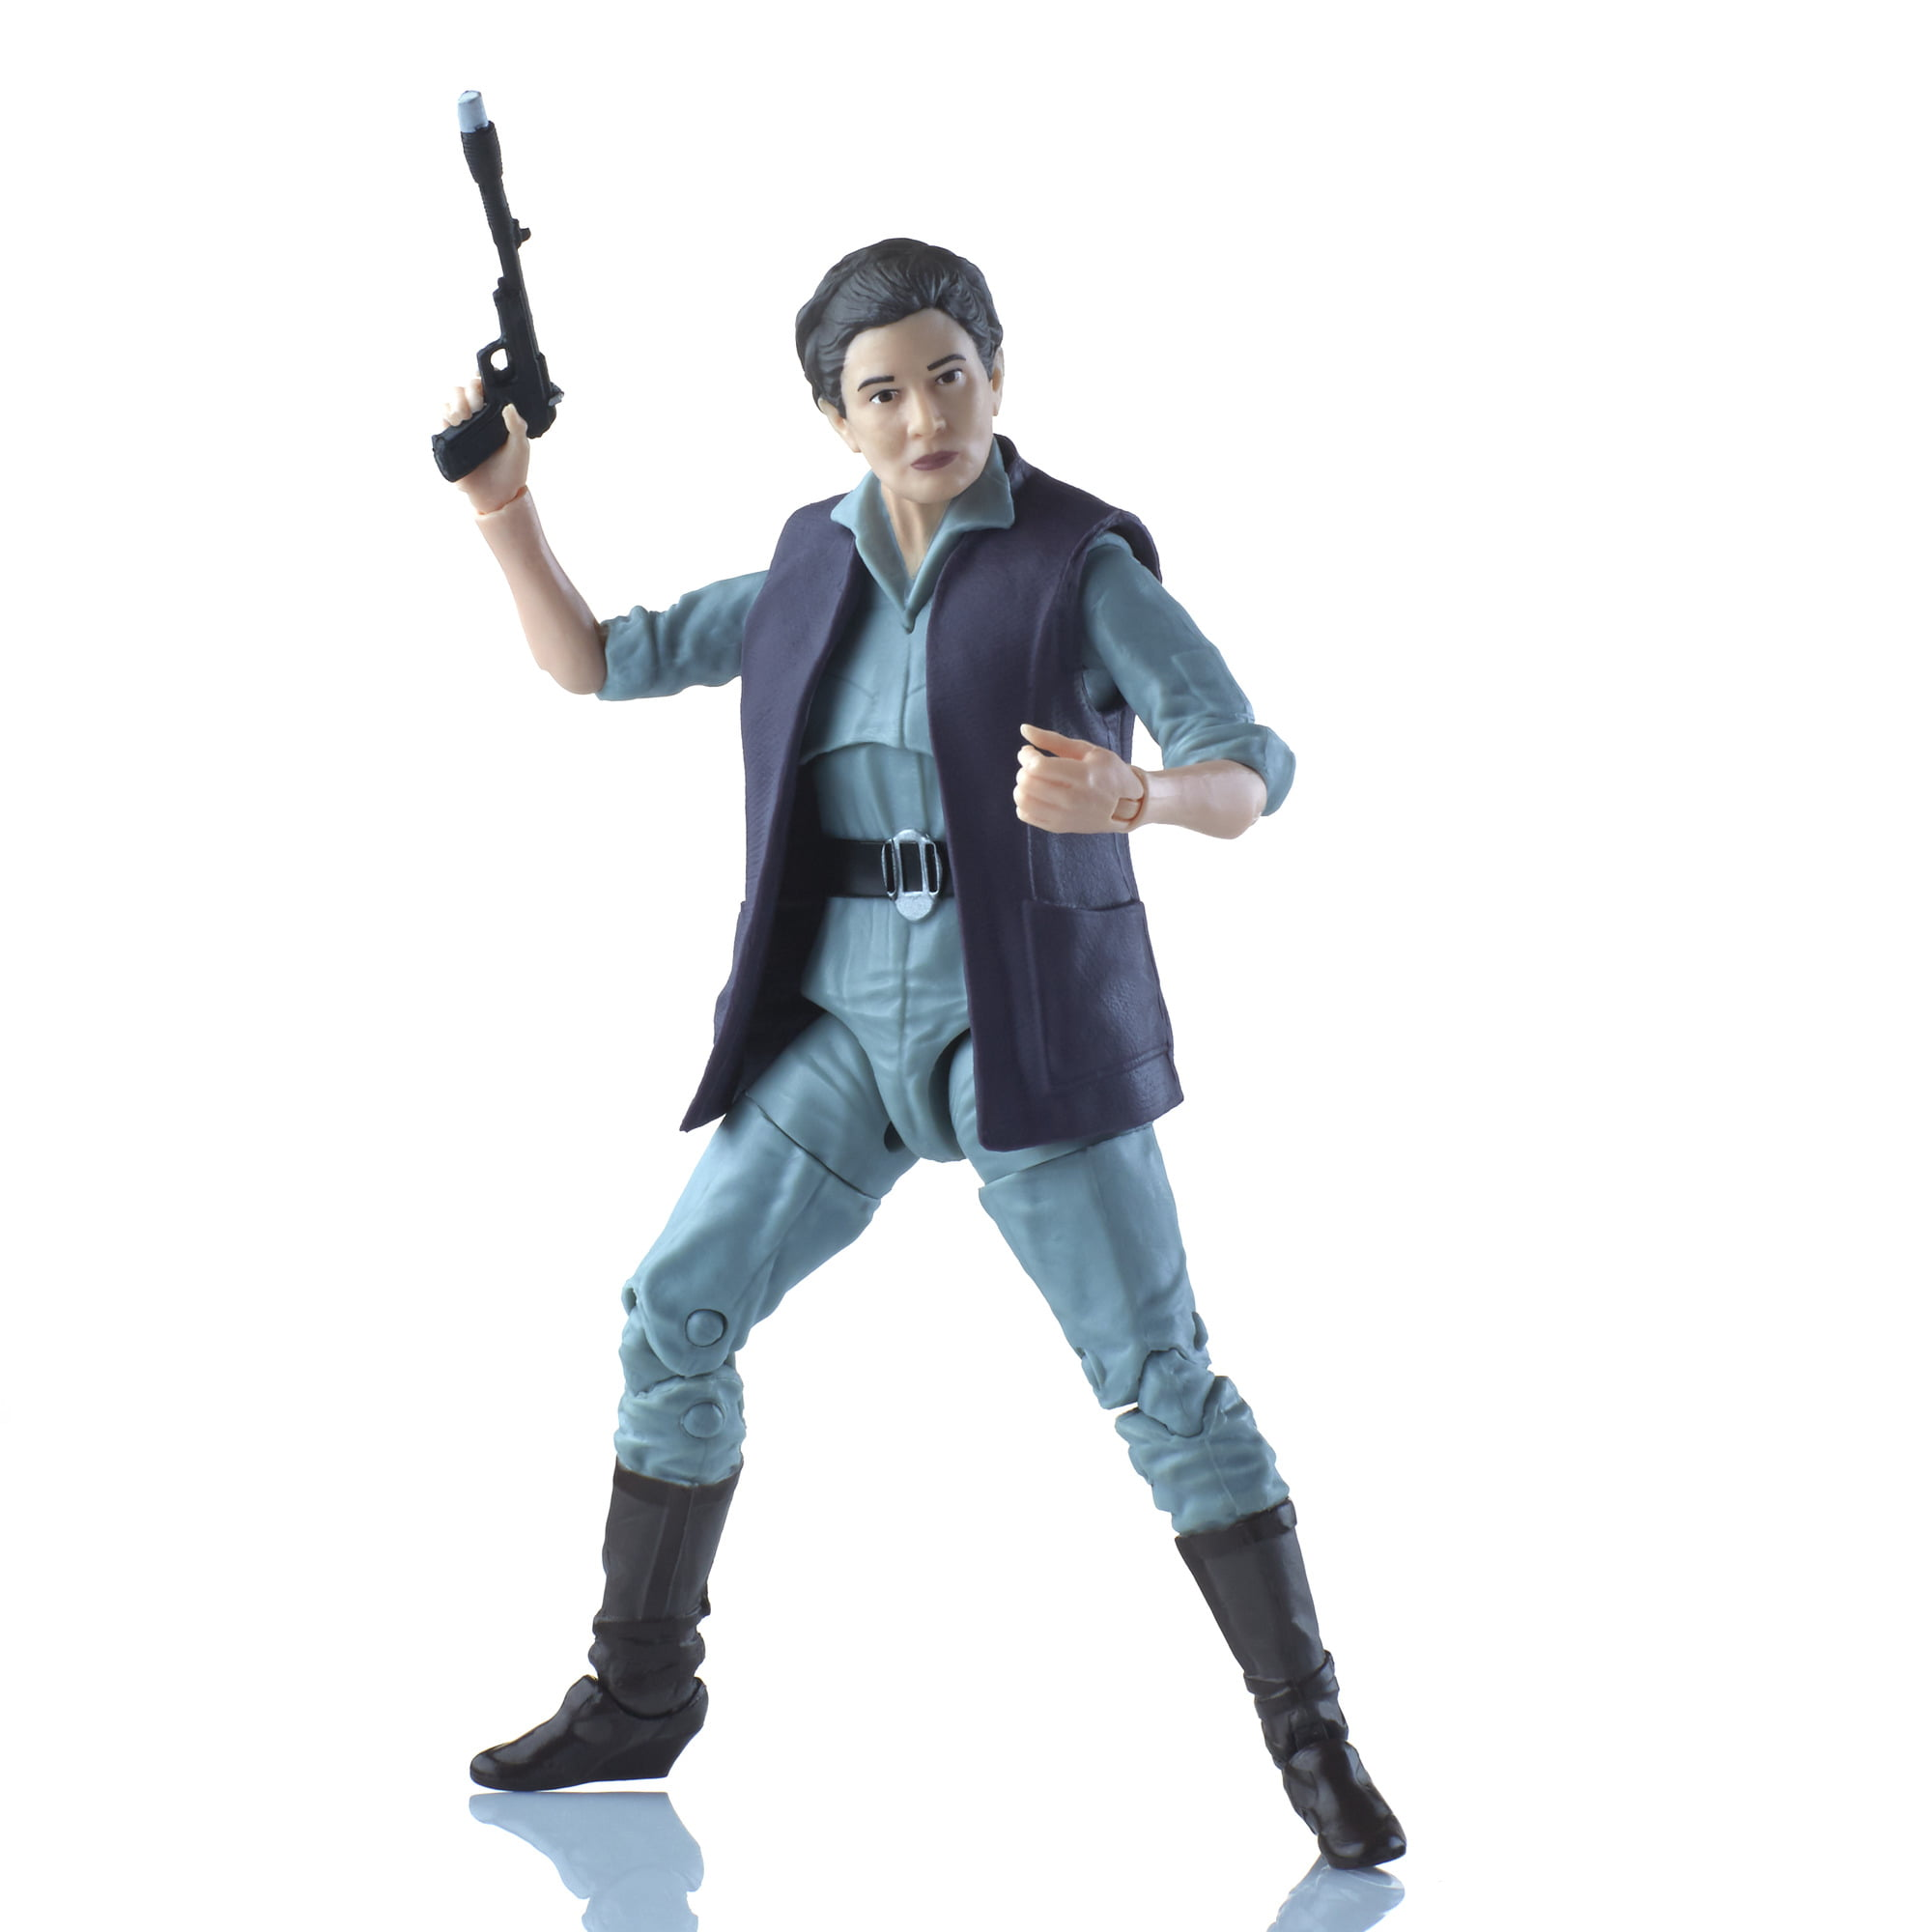 General Leia Organa Star Wars The Black Series 6-Inch Action Figure